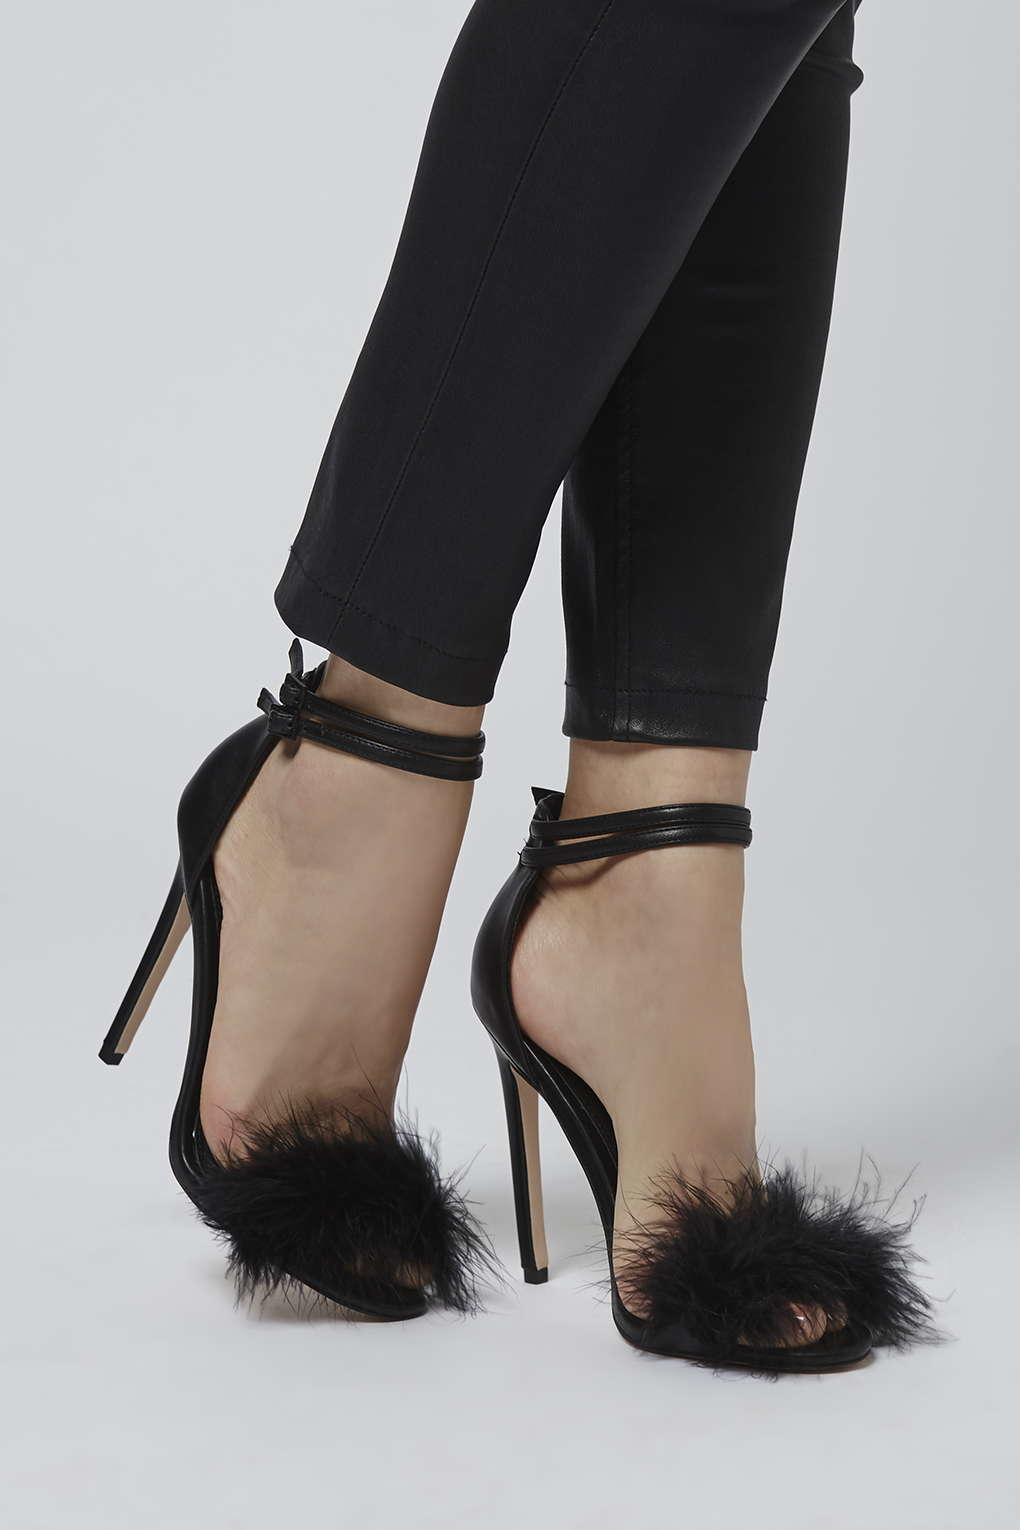 Topshop Reese Feather Sandals In Black Lyst